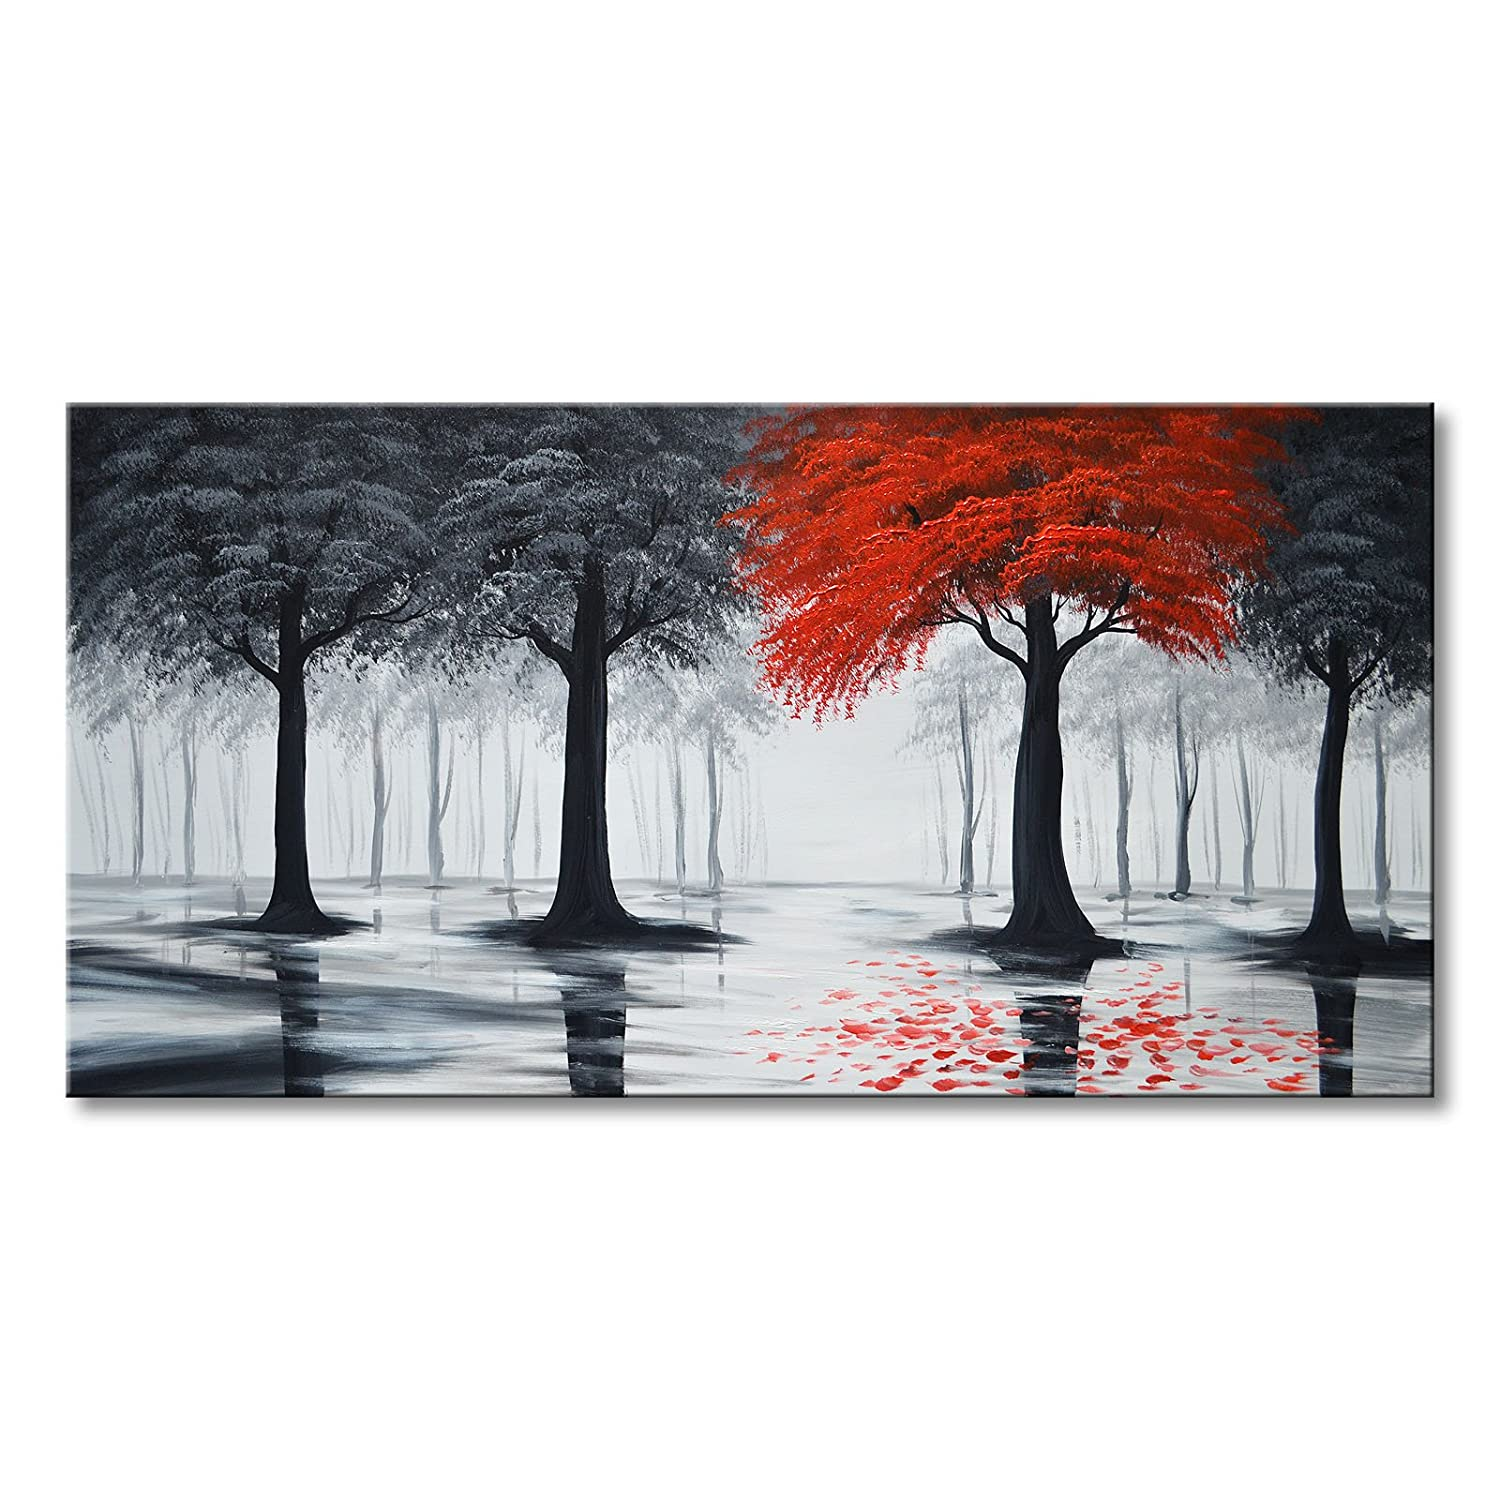 Everfun Art Hand Painted Landscape Oil Painting On Canvas Modern Contemporary Black and Red Forest Wall Art Abstract Tree Stretched Artwork Framed Ready to Hang ( 40x20 inch) Everfun Painting